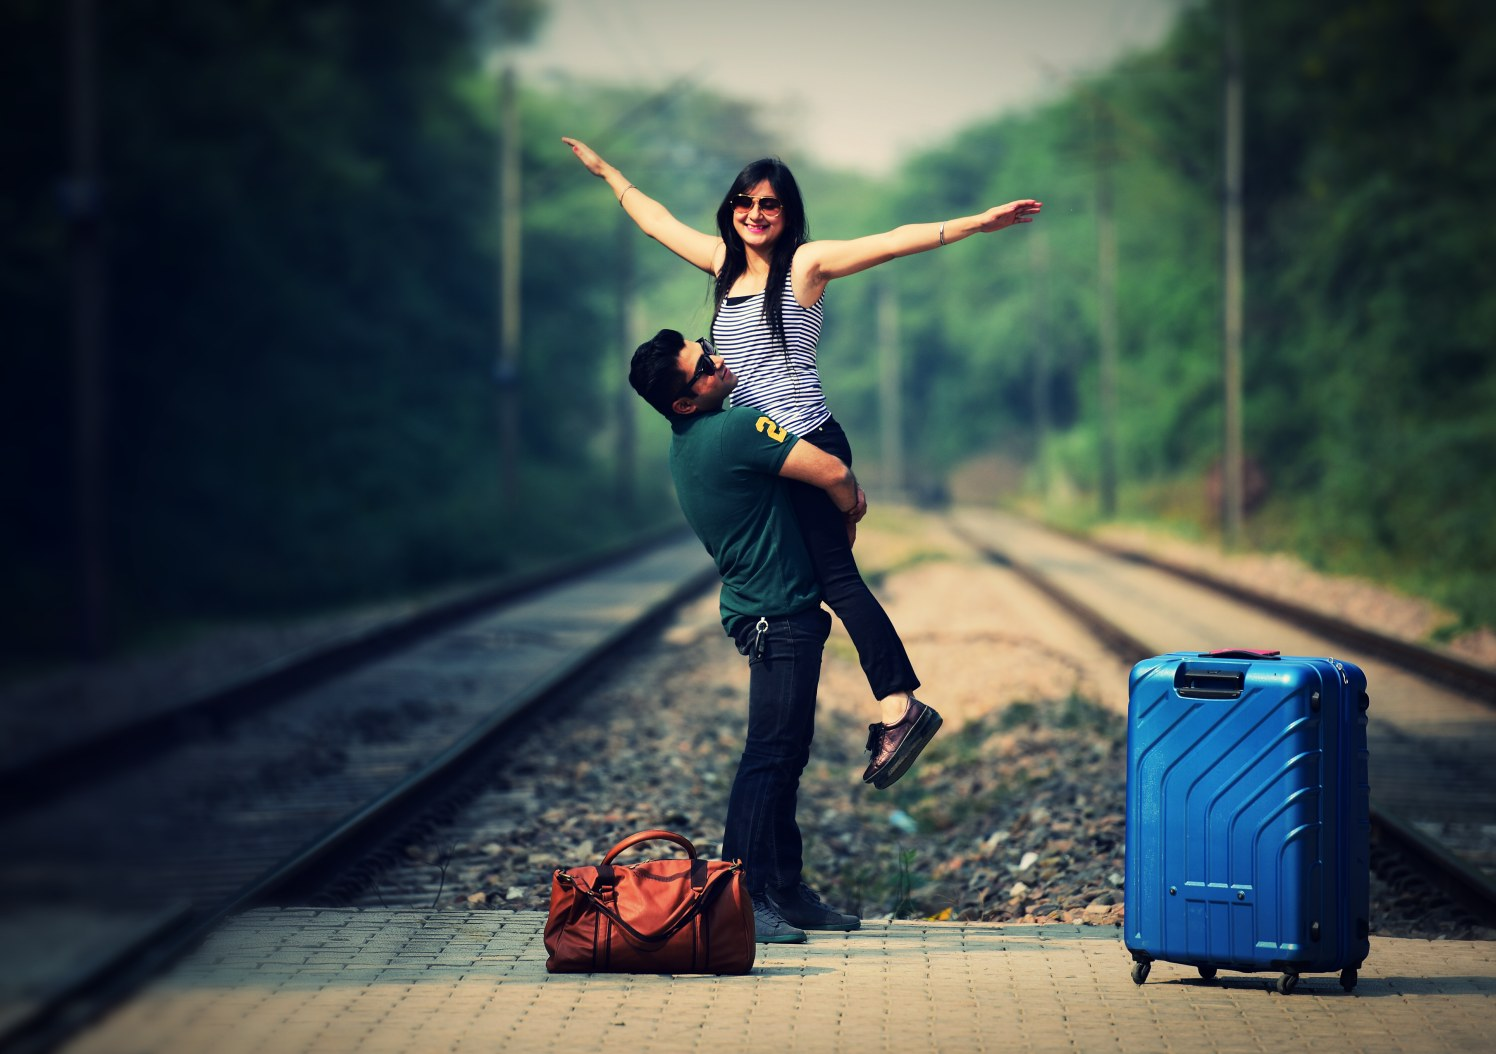 Bride and Groom To-Be Pose by the Railtracks by Himanshu Chauhan Wedding-photography | Weddings Photos & Ideas